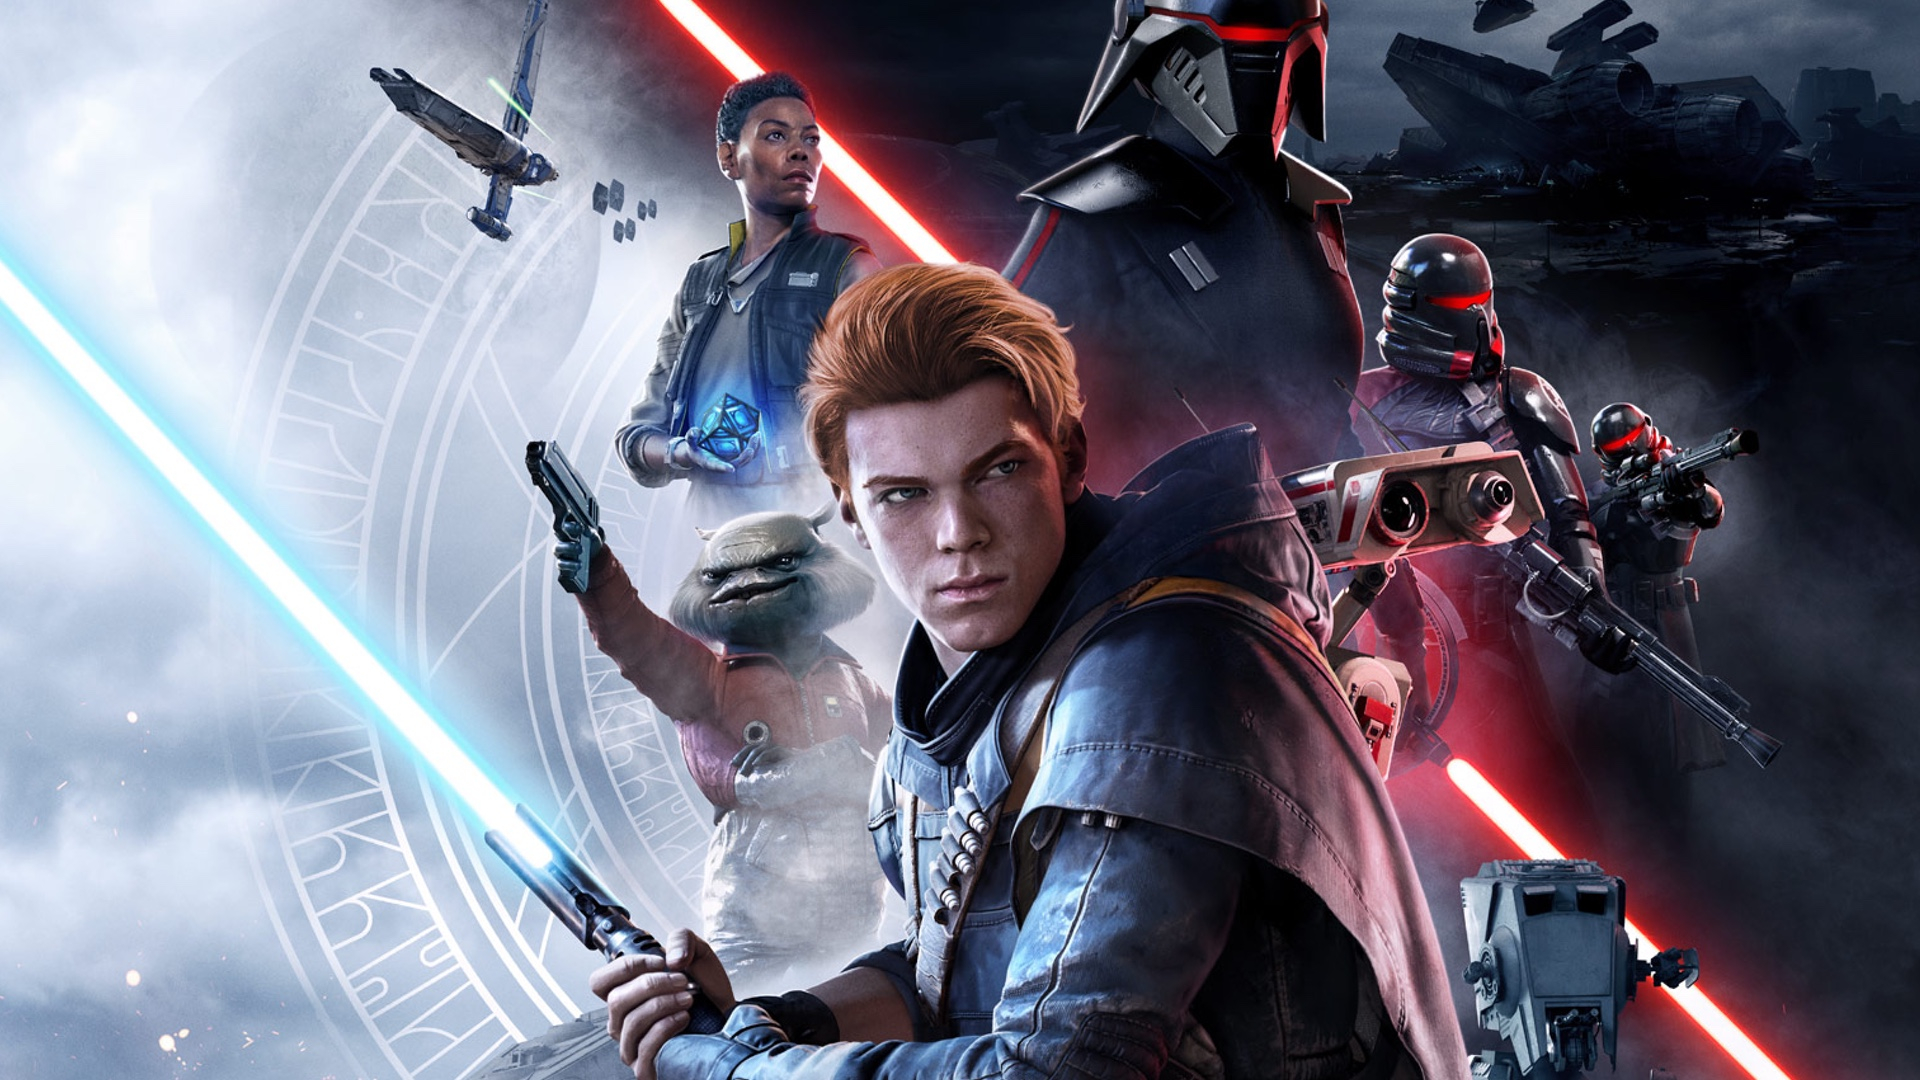 Star Wars Jedi: Fallen Order Will Not Have Early Access Through EA Access Header Image